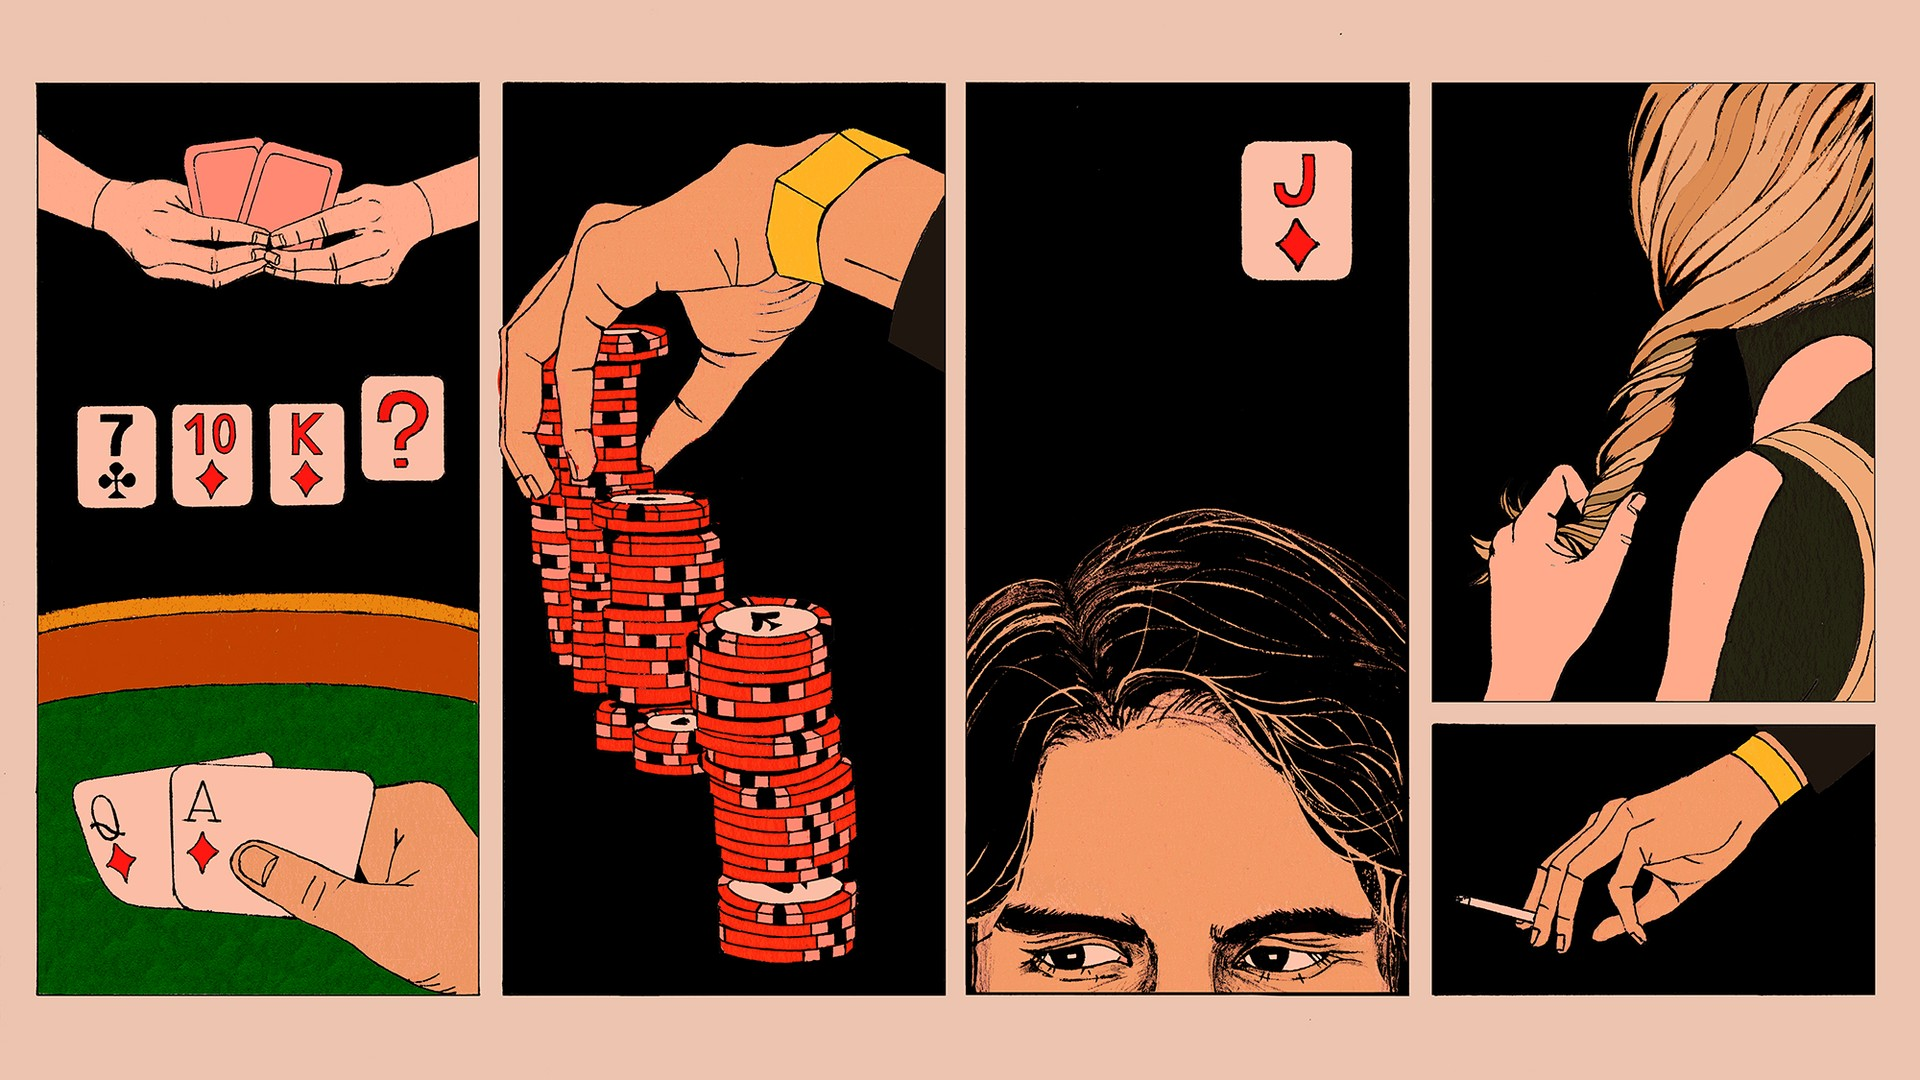 An illustration of poker scenes